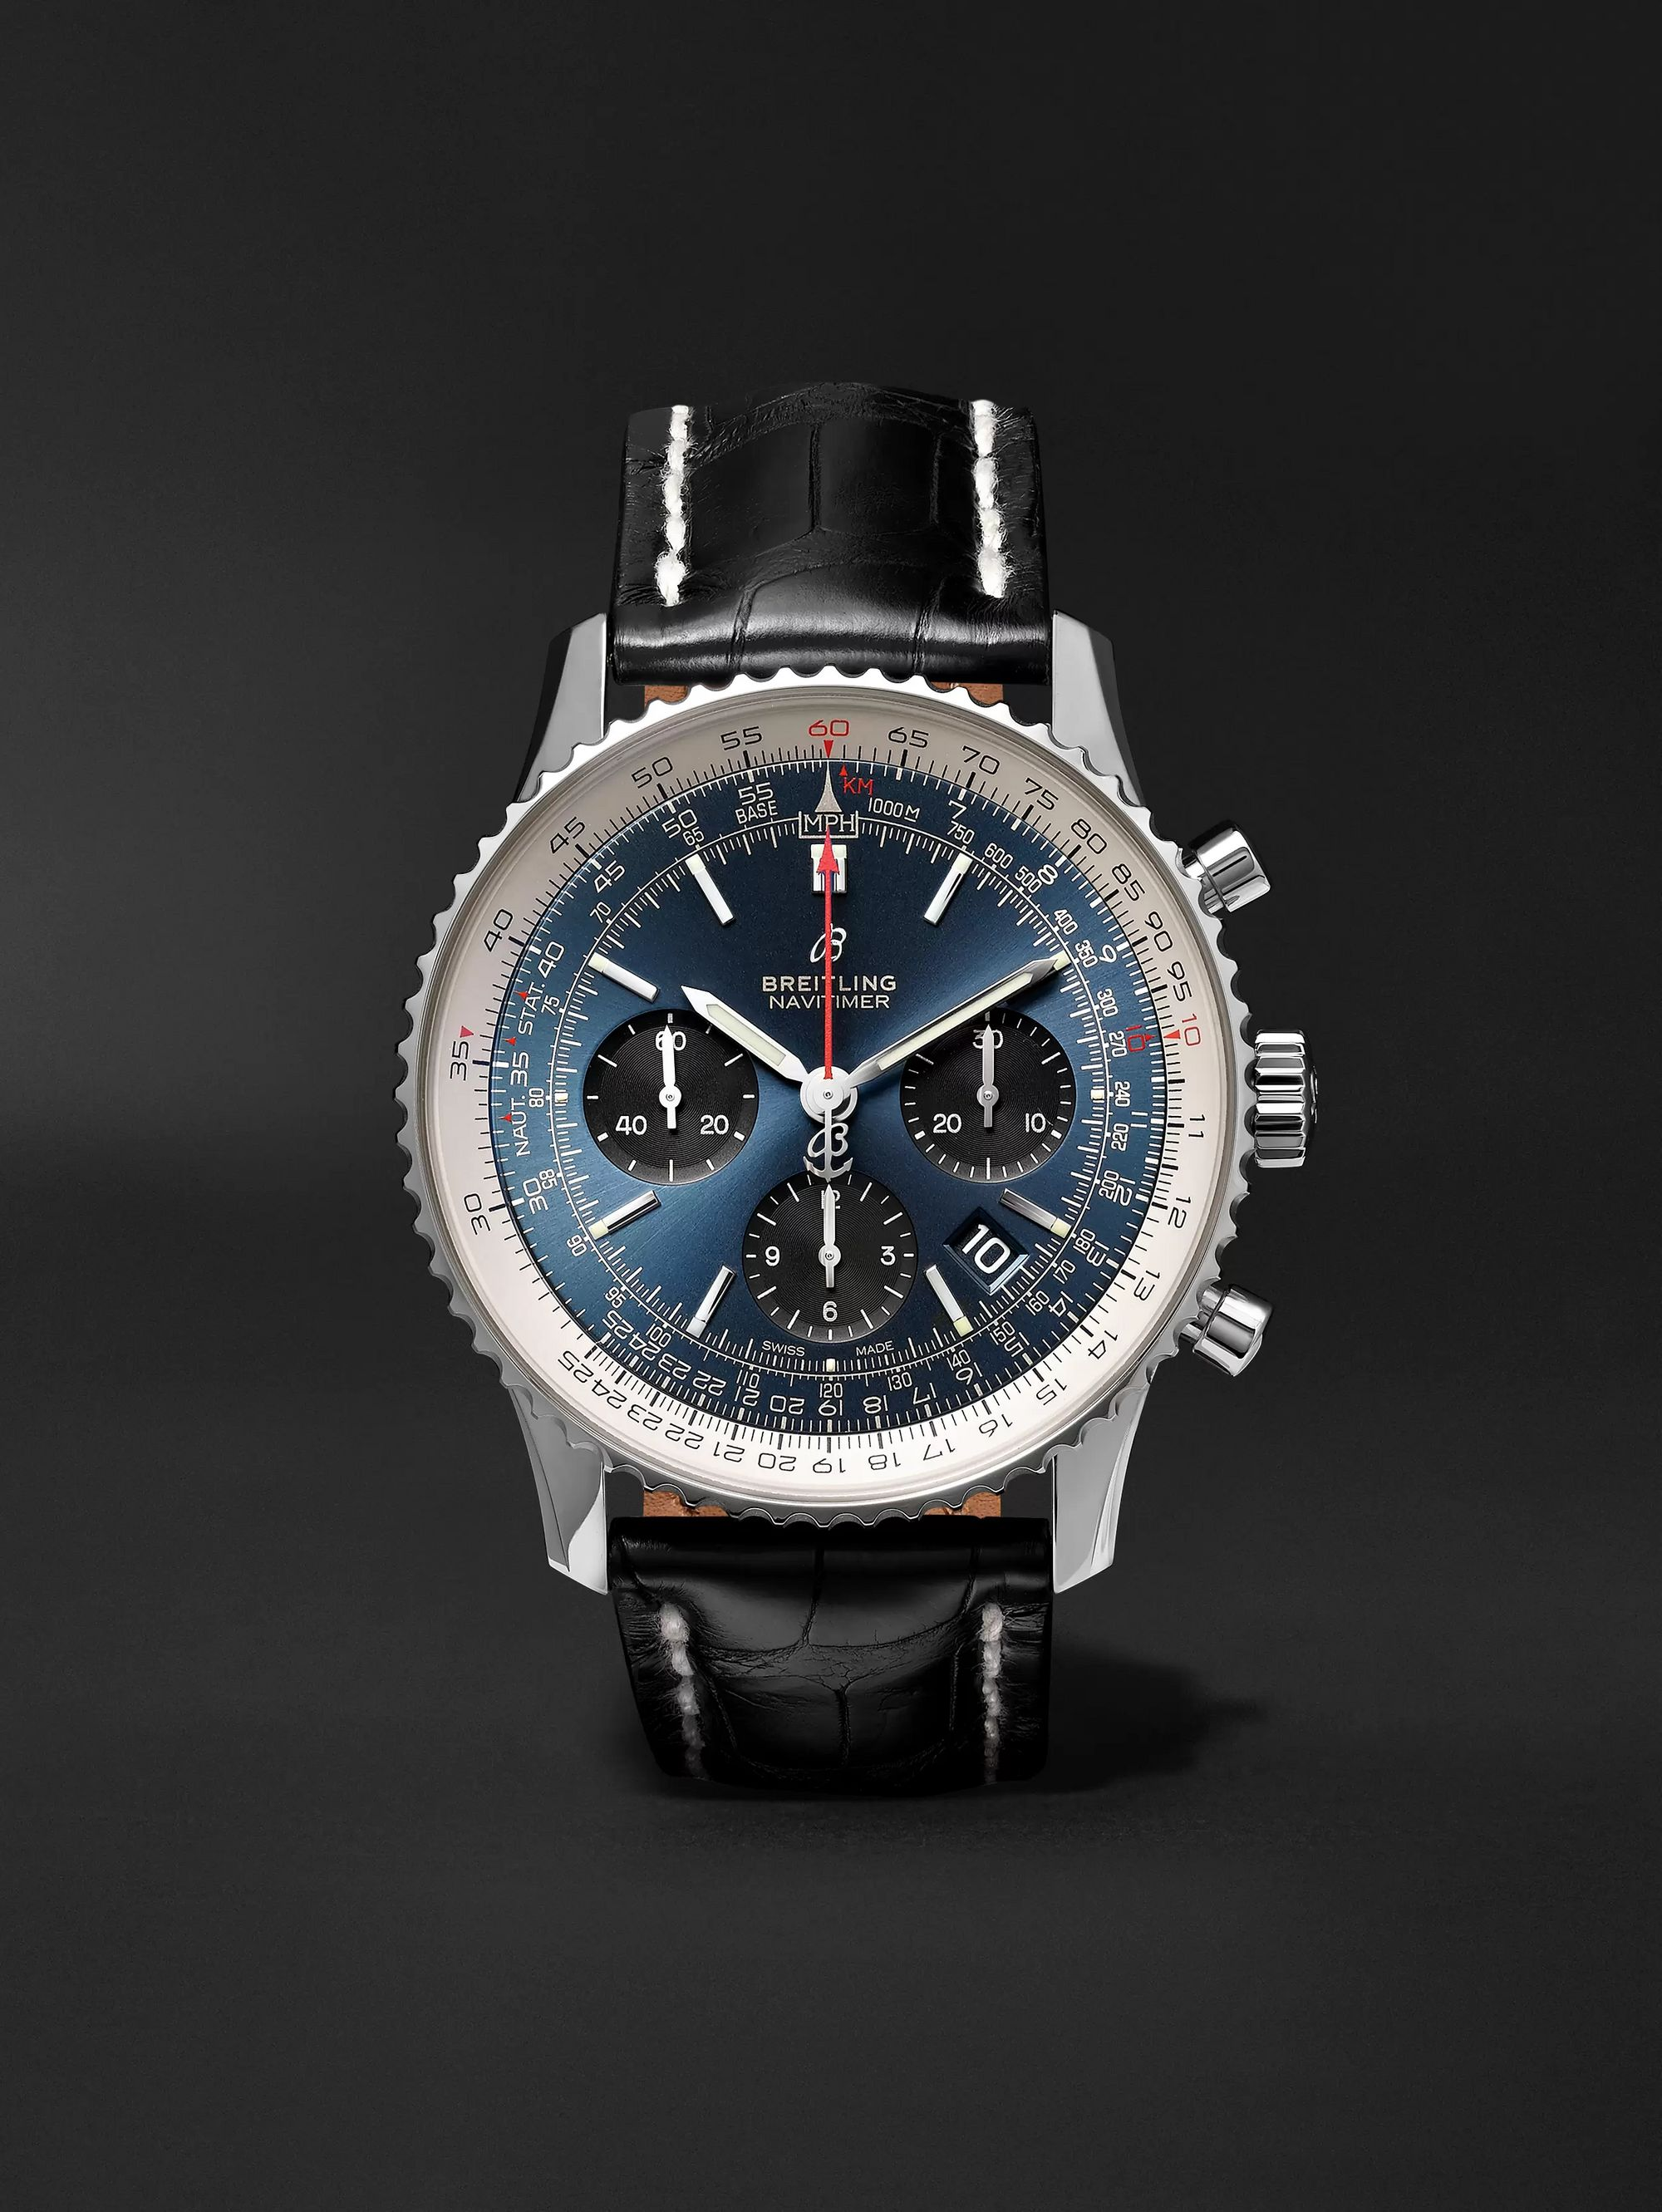 Breitling Navitimer 1 B01 Chronometer 43mm Stainless Steel and Alligator Watch, Ref. No. AB0121211C1P1